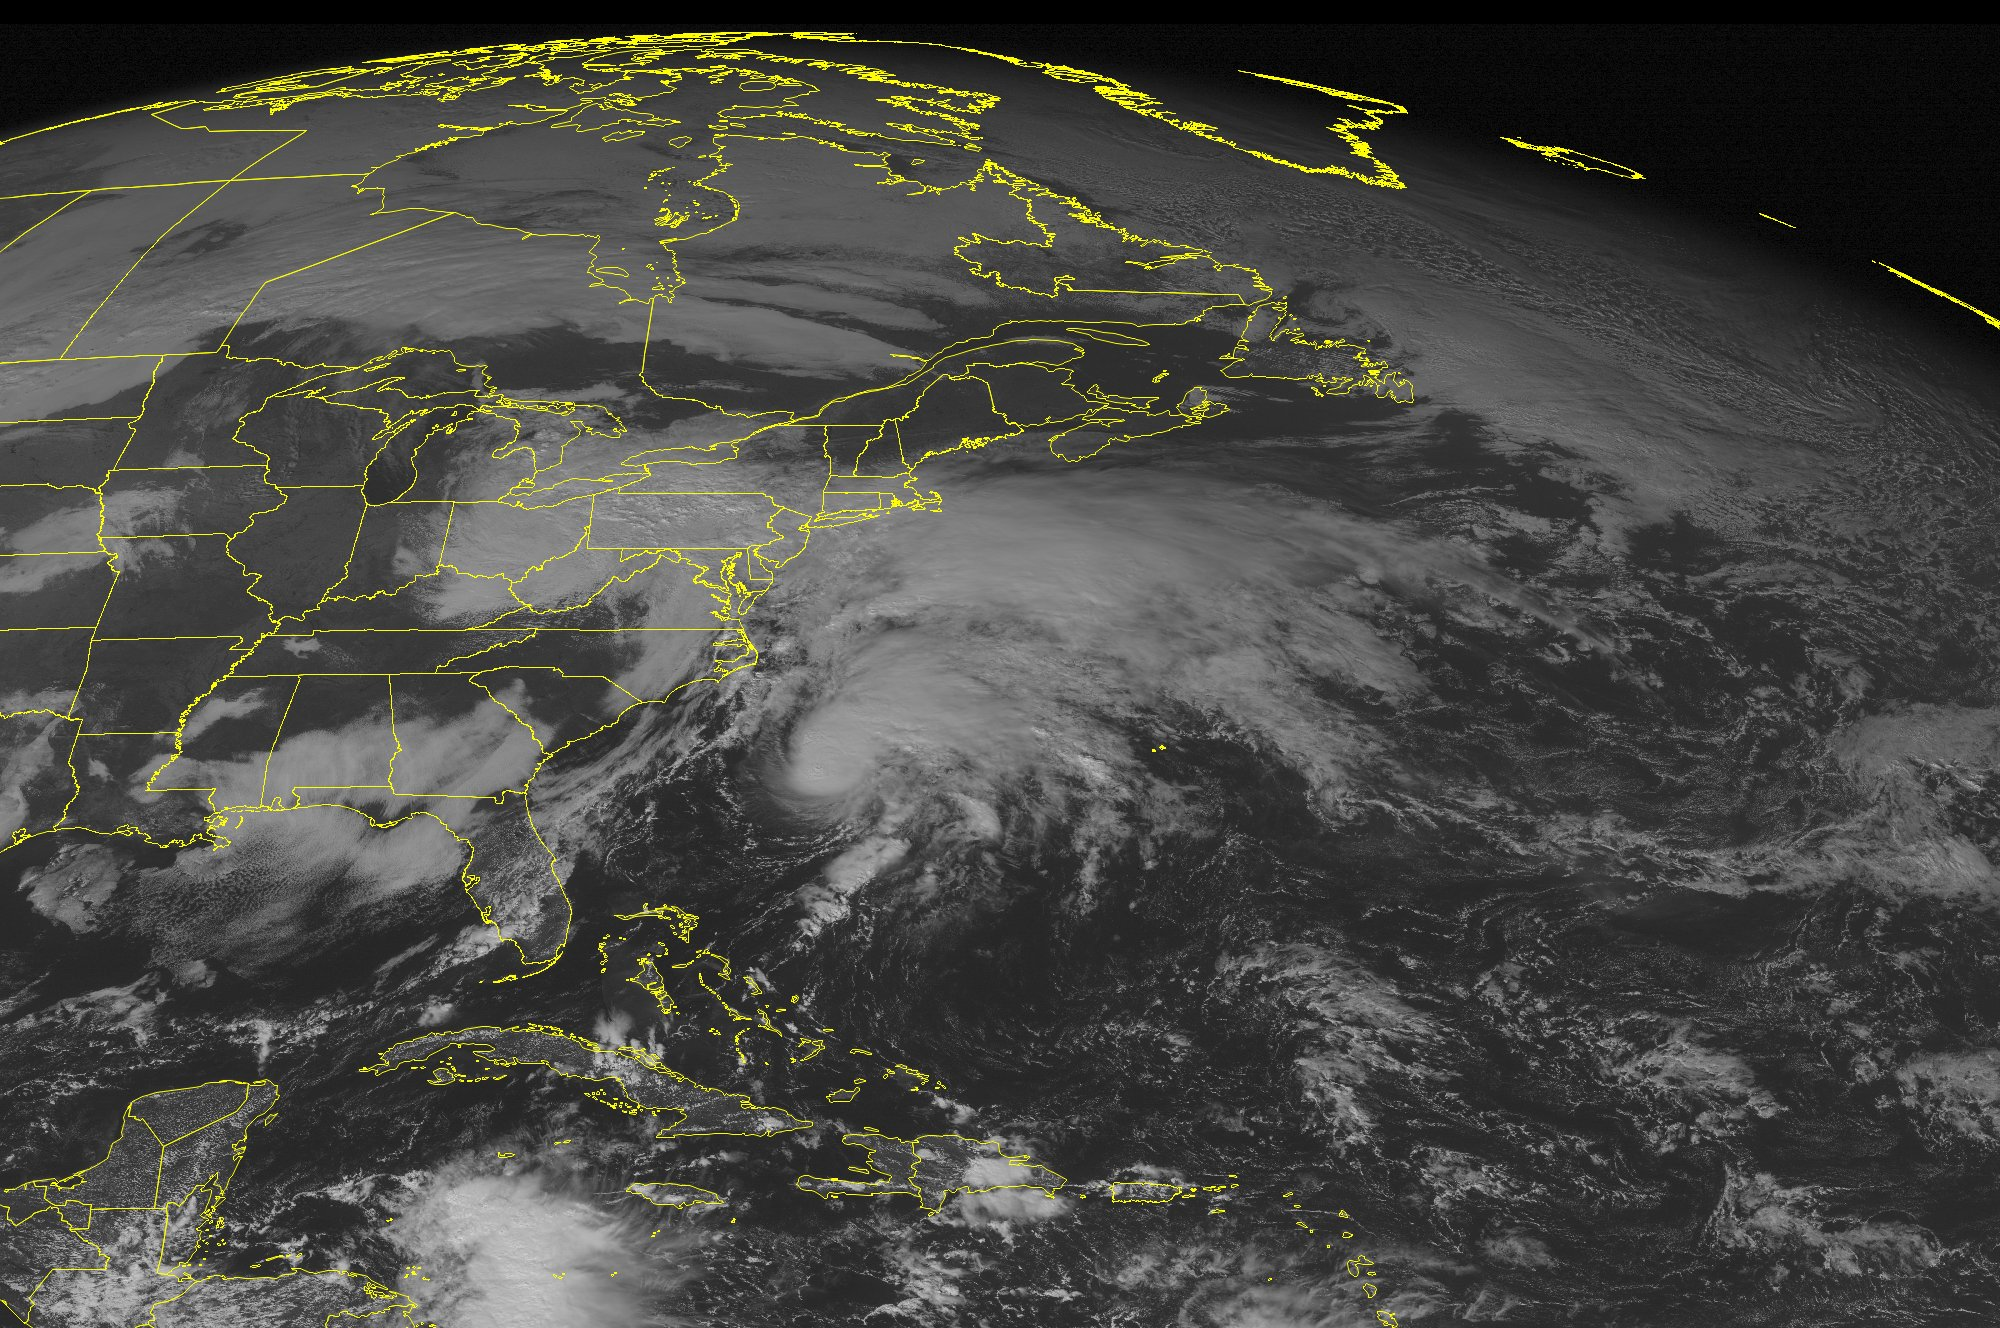 This NOAA satellite image taken Tues., Nov. 10 at 12:45 p.m. shows a storm system over the Mid-Atlantic moving northeast into New England which will produce moderate to heavy rain over the area overnight. (Weather Underground via AP)